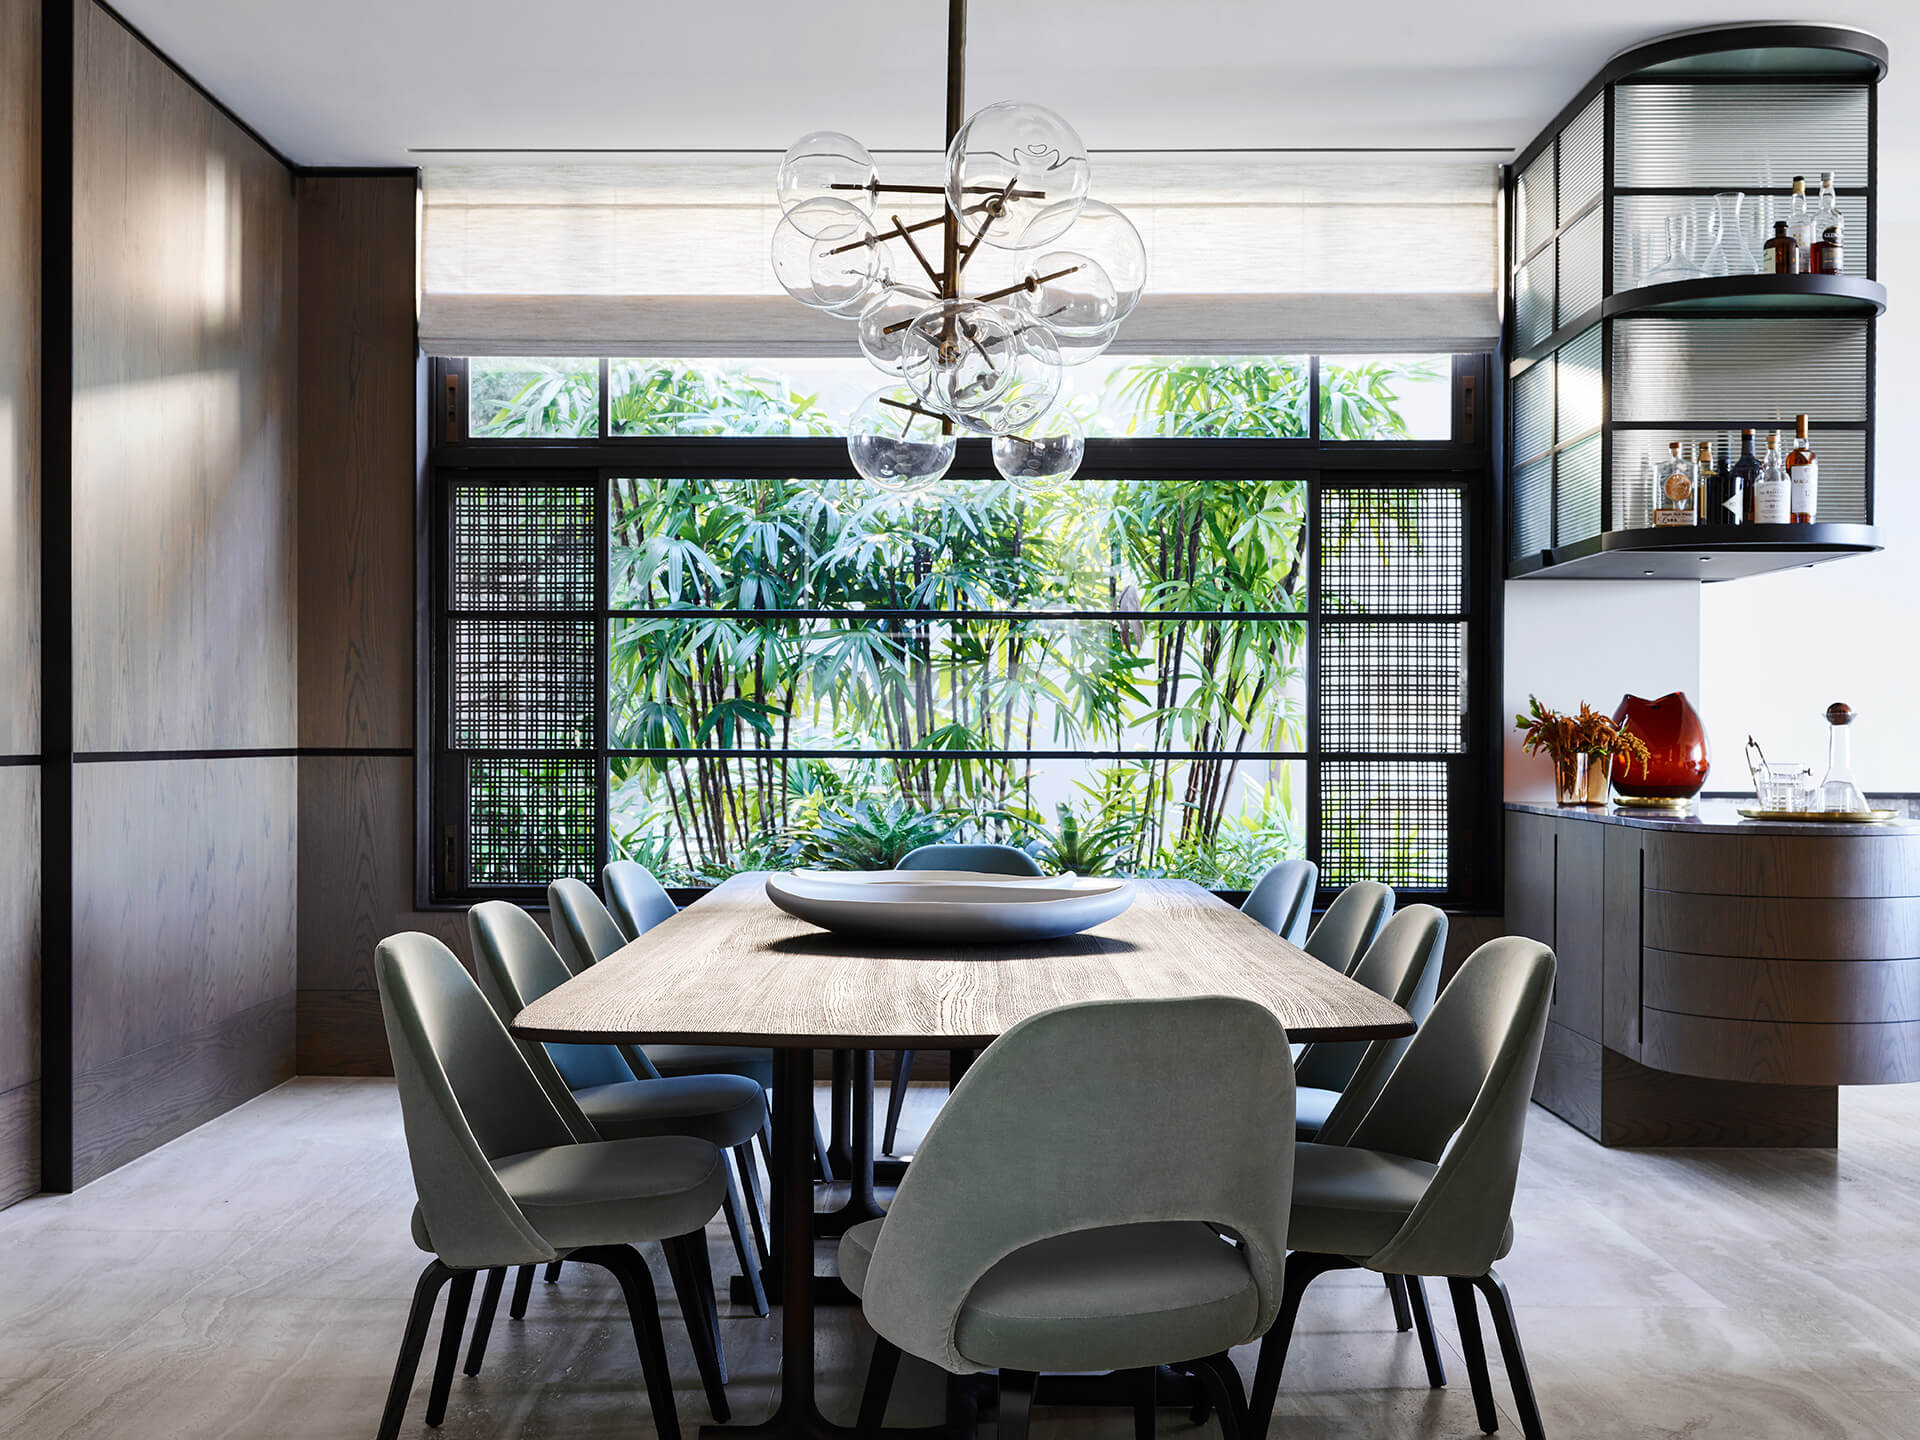 The dining area is one of the most interesting spaces in the house | Hill House Interiors | Decus Interiors | STIRworld